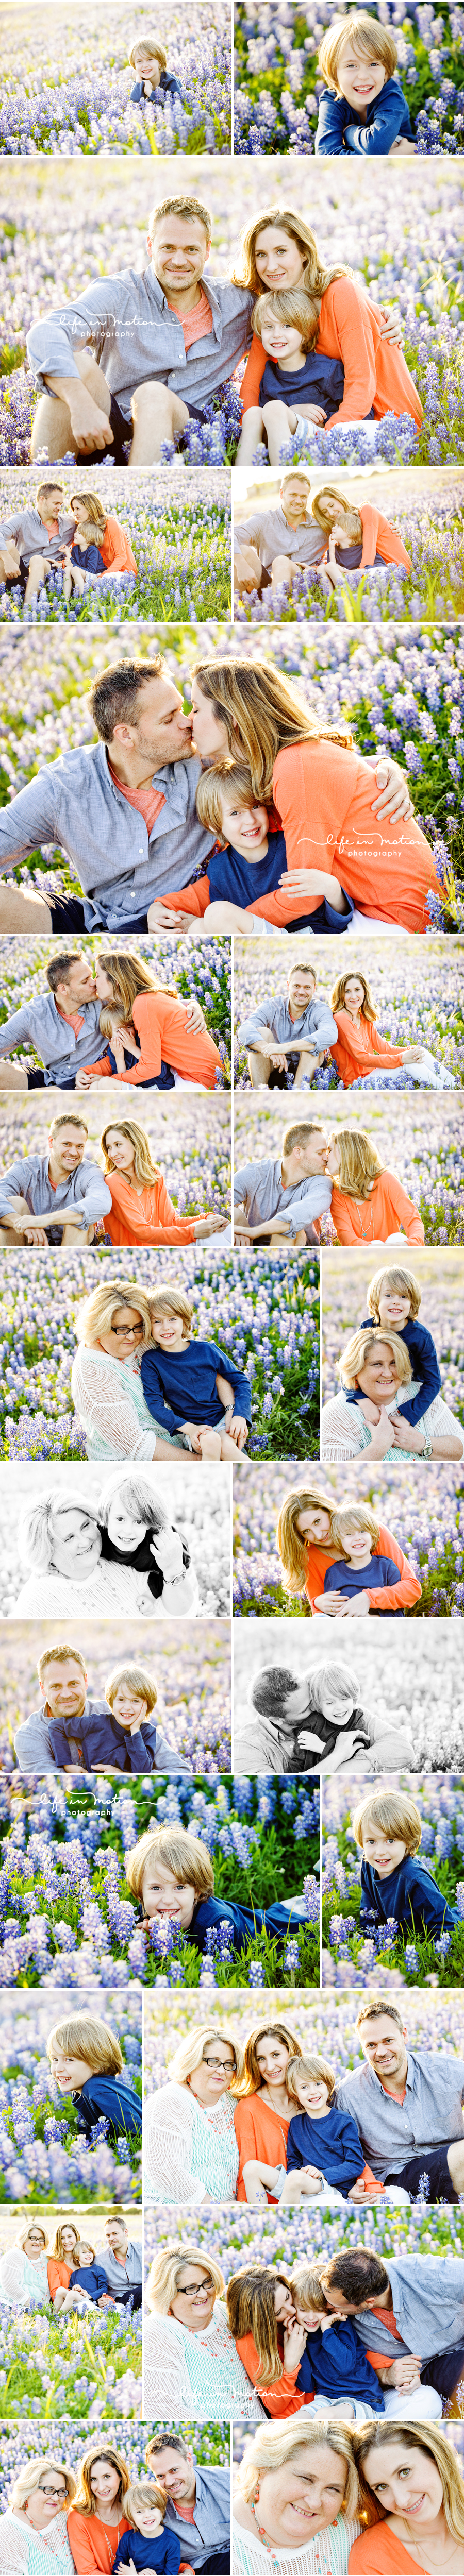 family bluebonnet photos